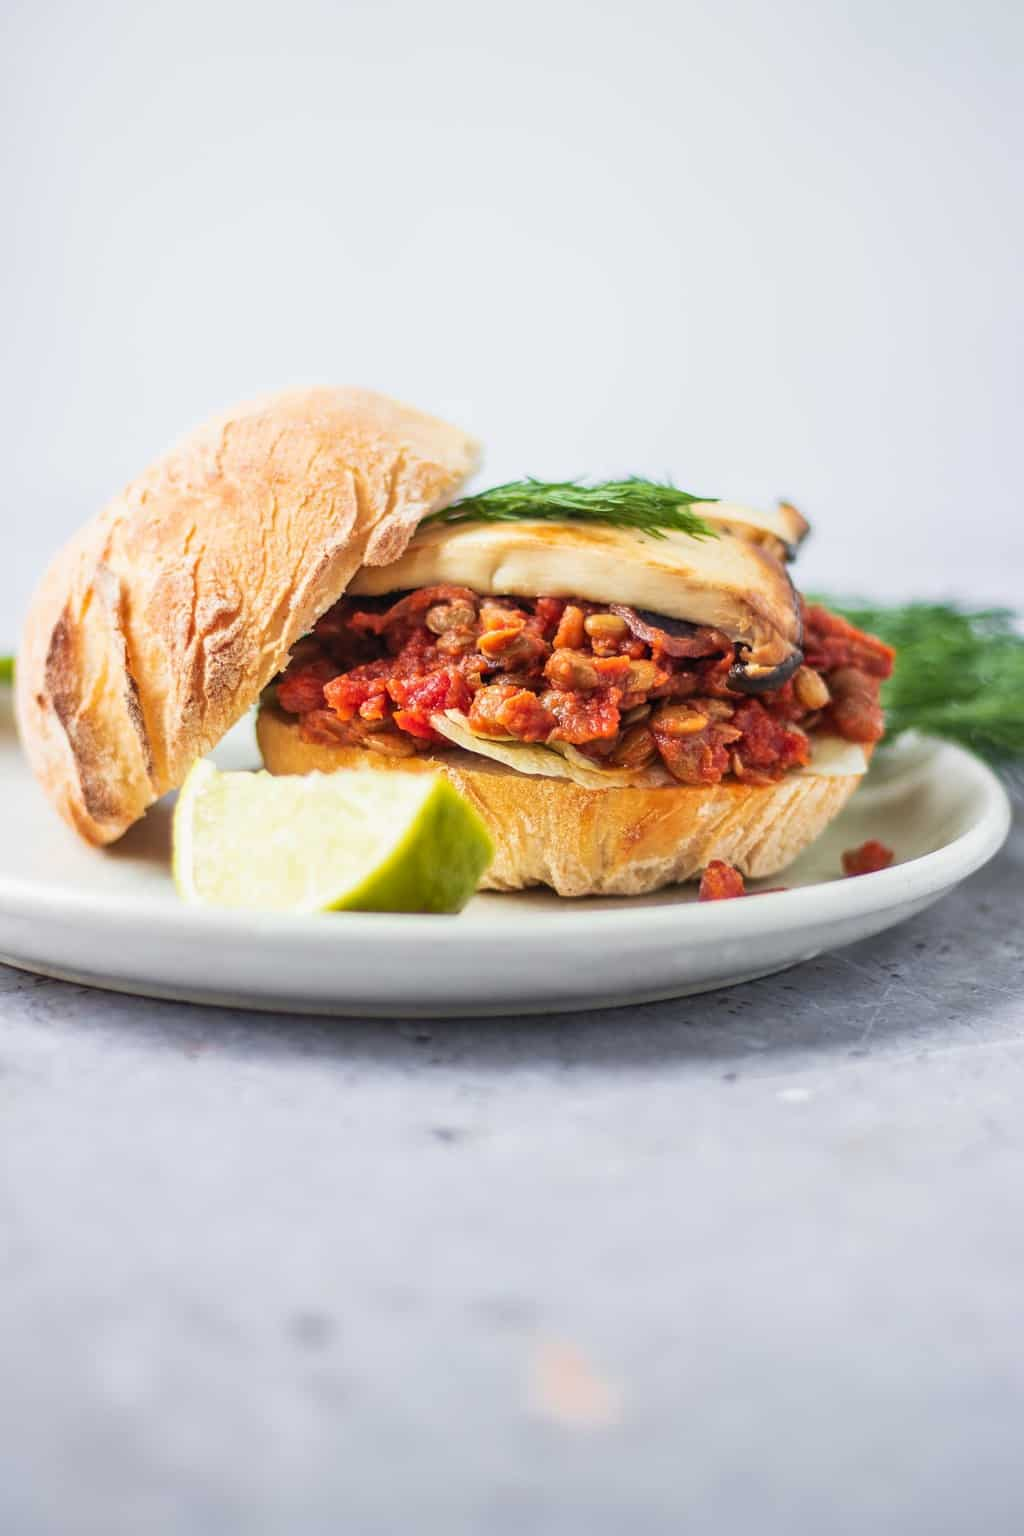 Vegan sloppy joes with mushrooms